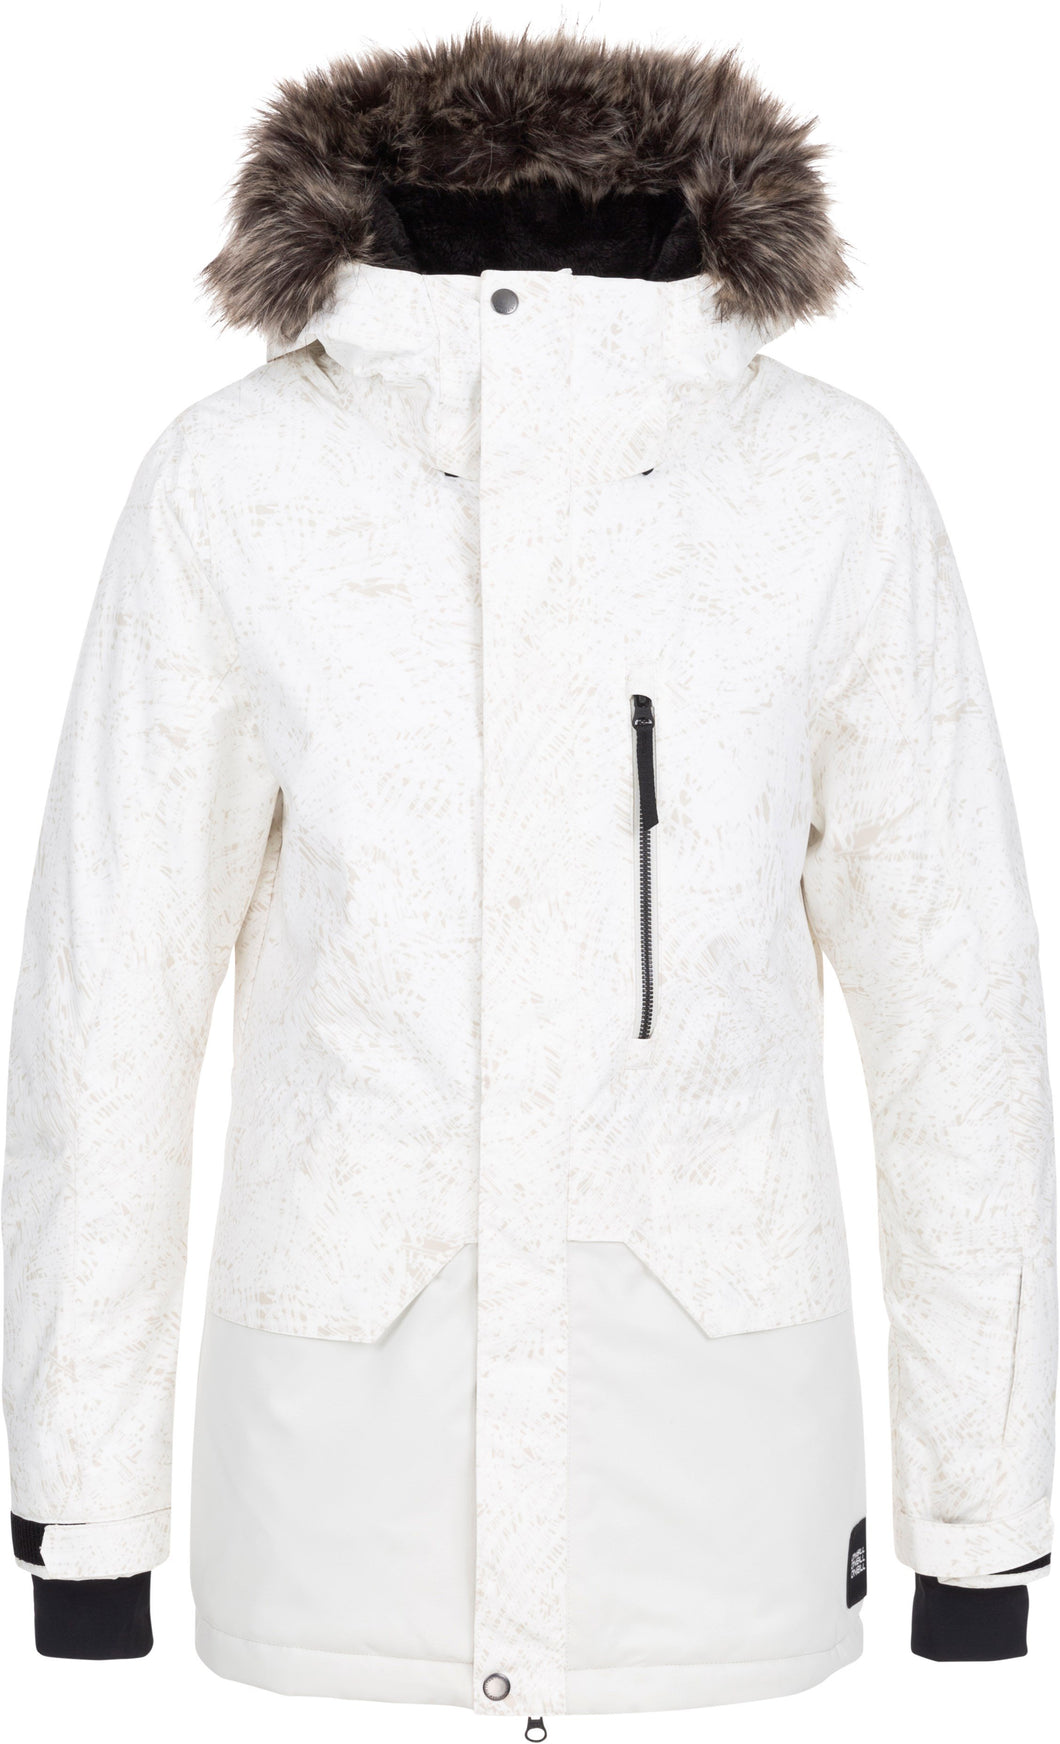 O'Neill Ladies Ski and Snowboard Zeolite Jacket White Front